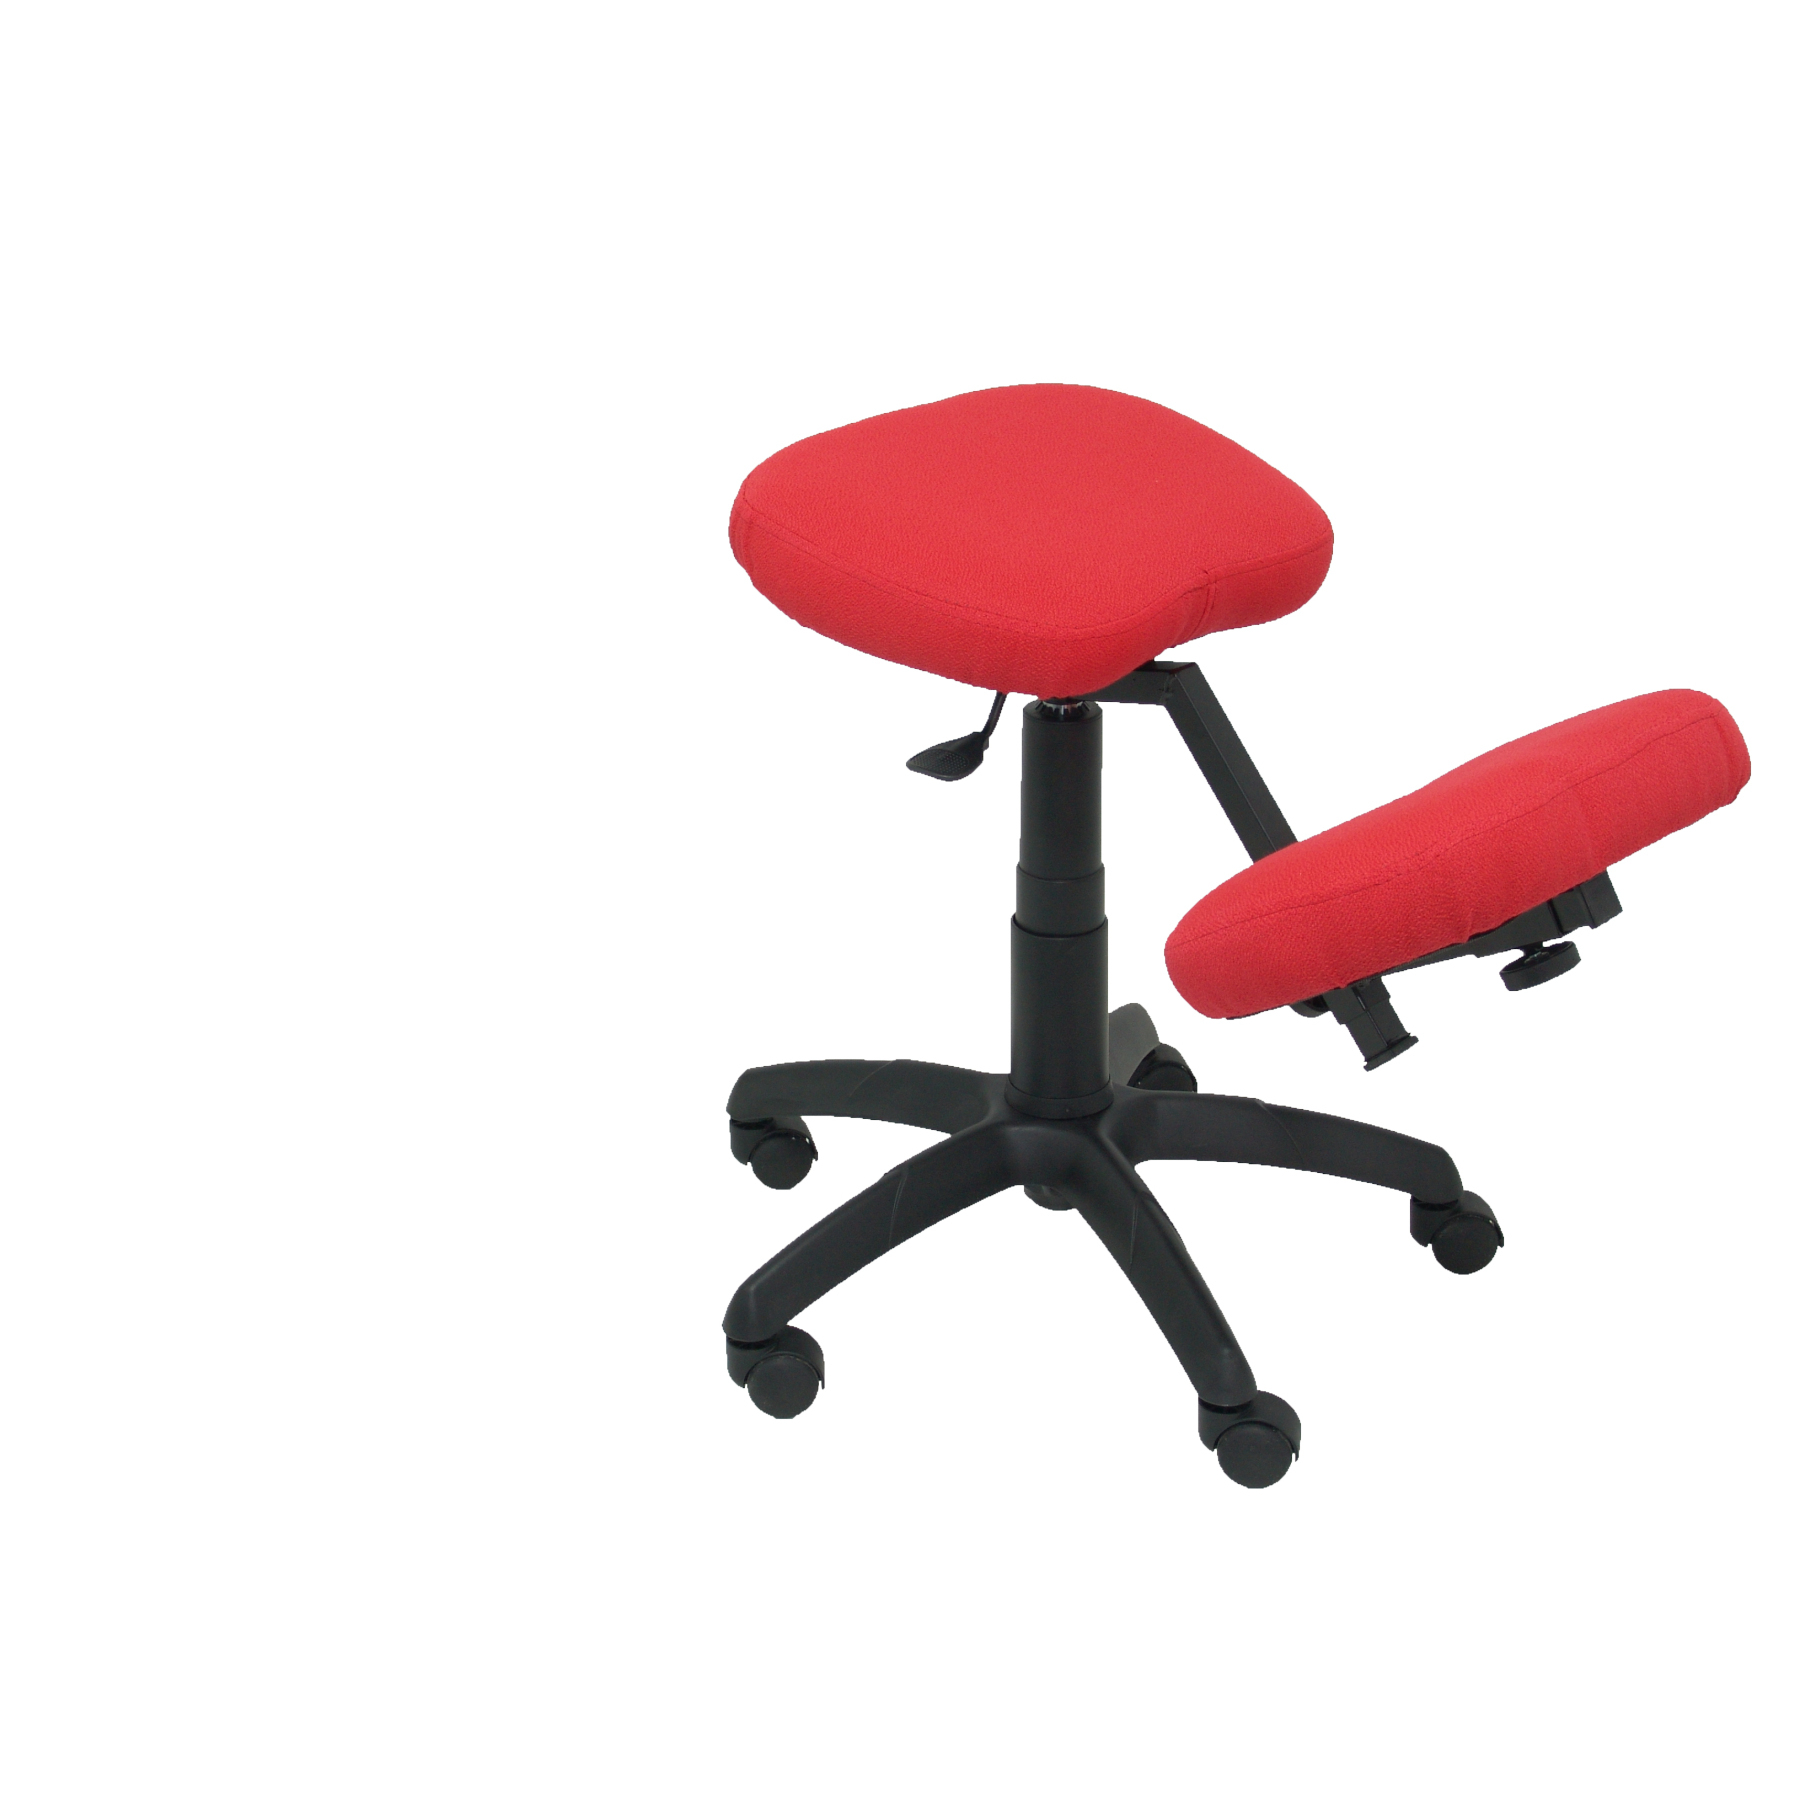 Office's Stool Ergonomic Swivel And Dimmable In High Altitude Up Seat Upholstered In BALI Tissue Red Color (KNEE R